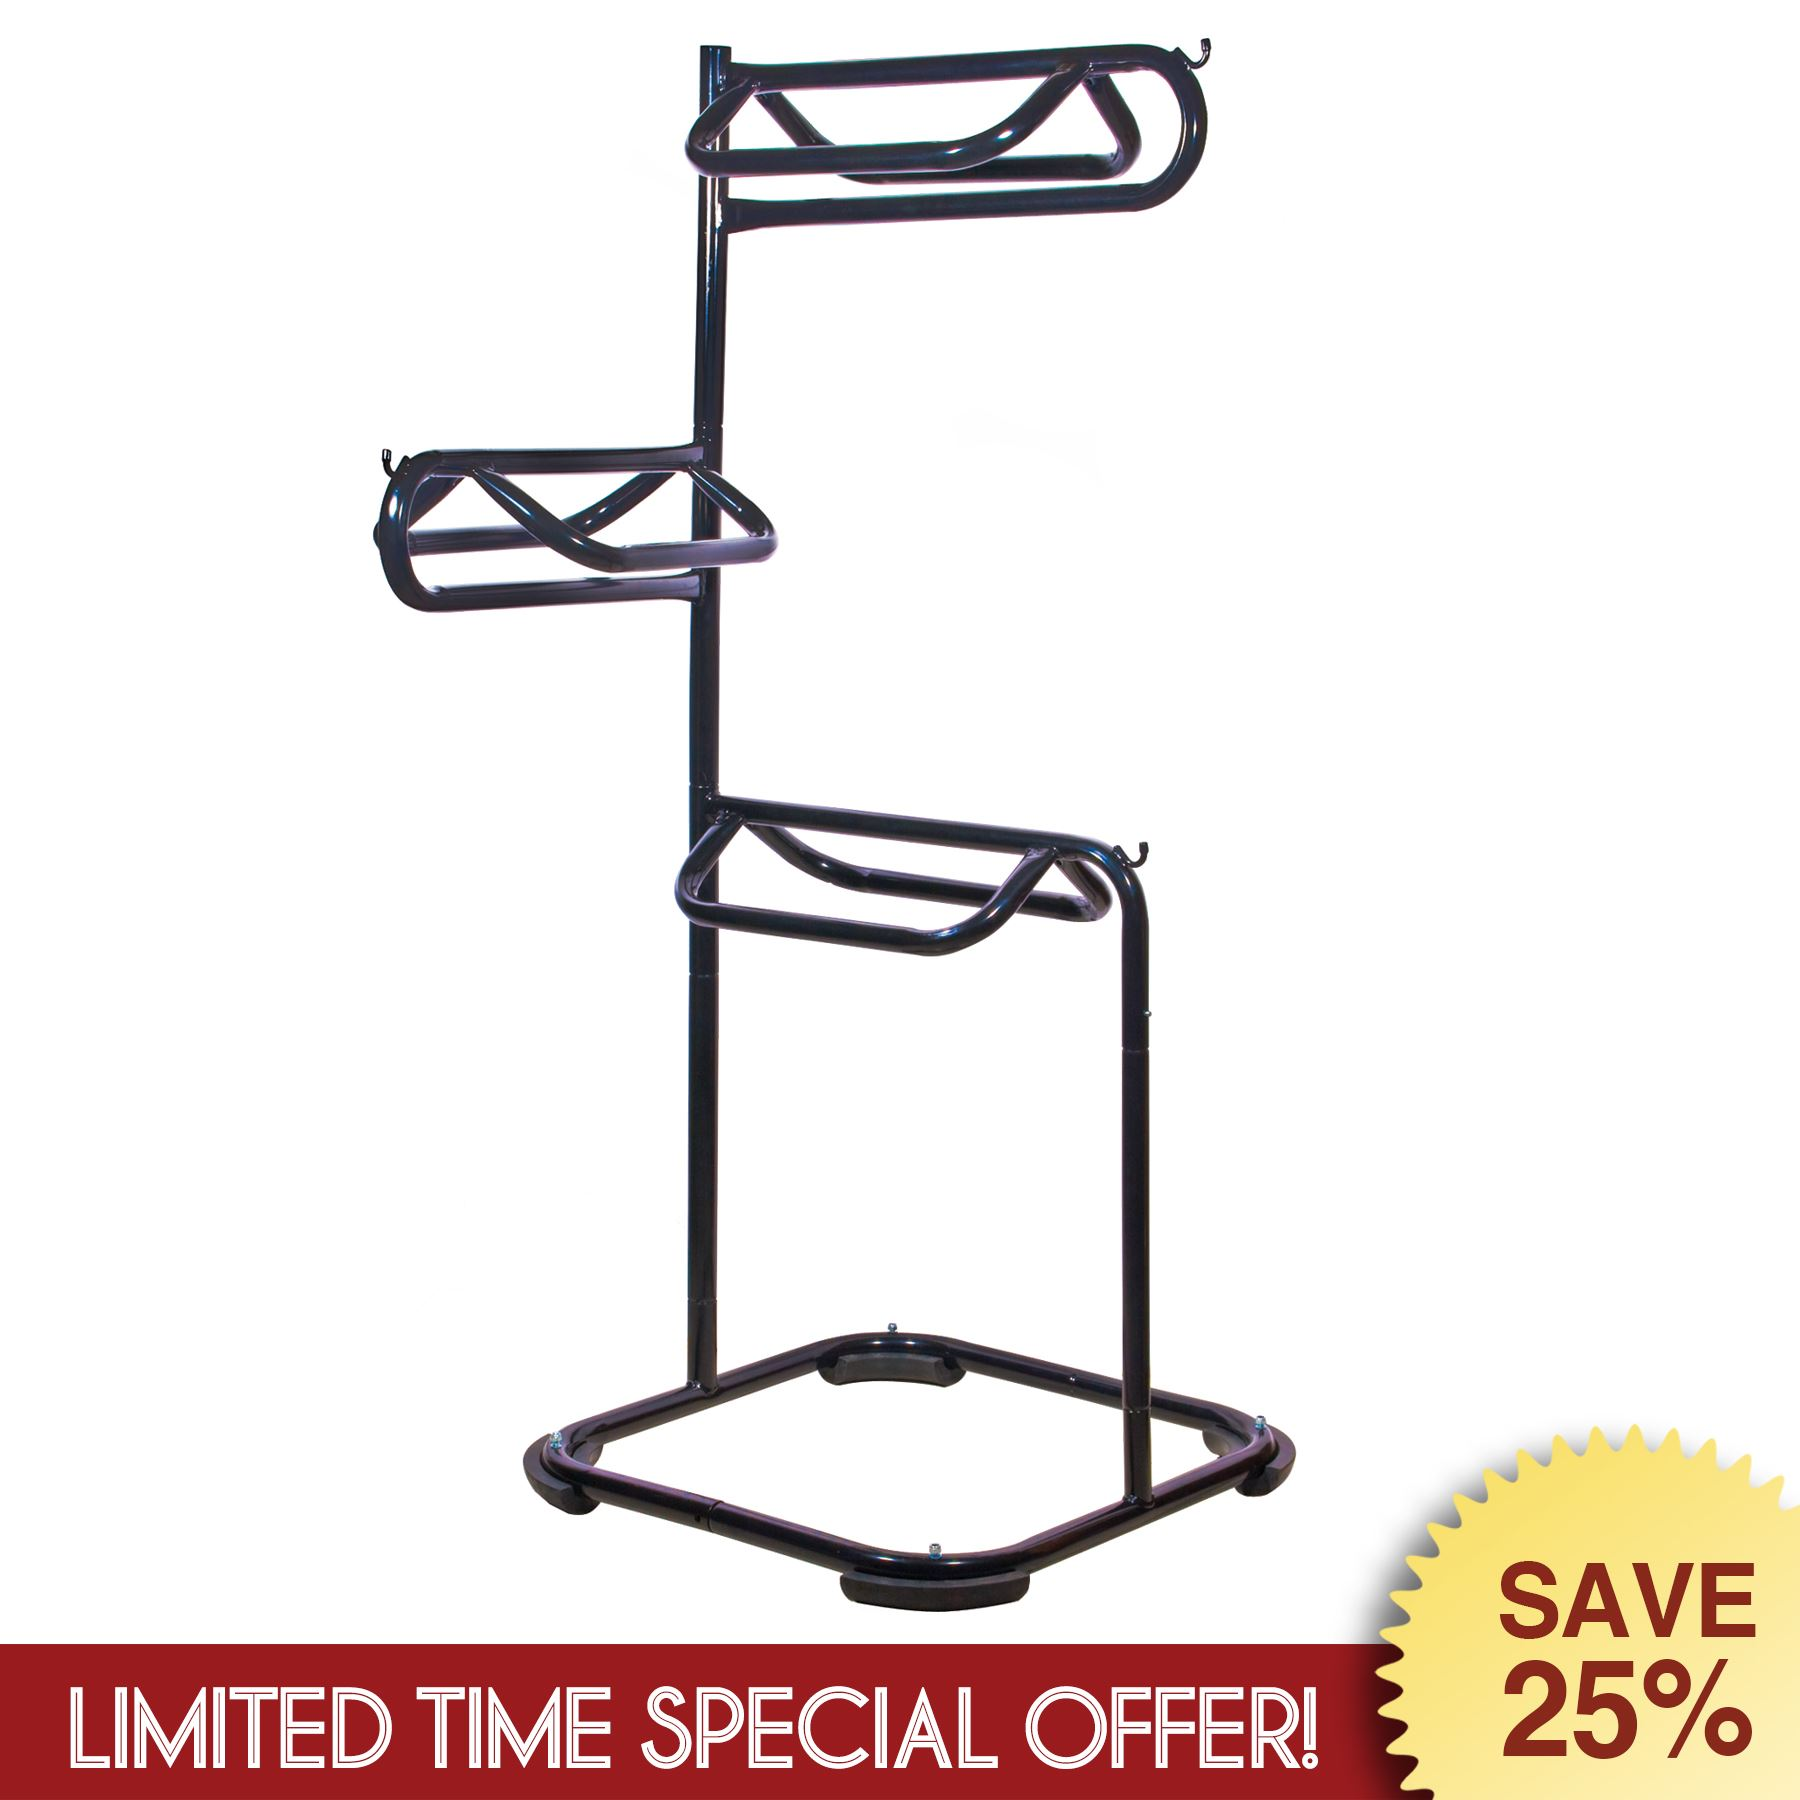 tier outdoors dp duty holder titan amazon rack sports storage stand heavy saddle horse display com equestrian barn